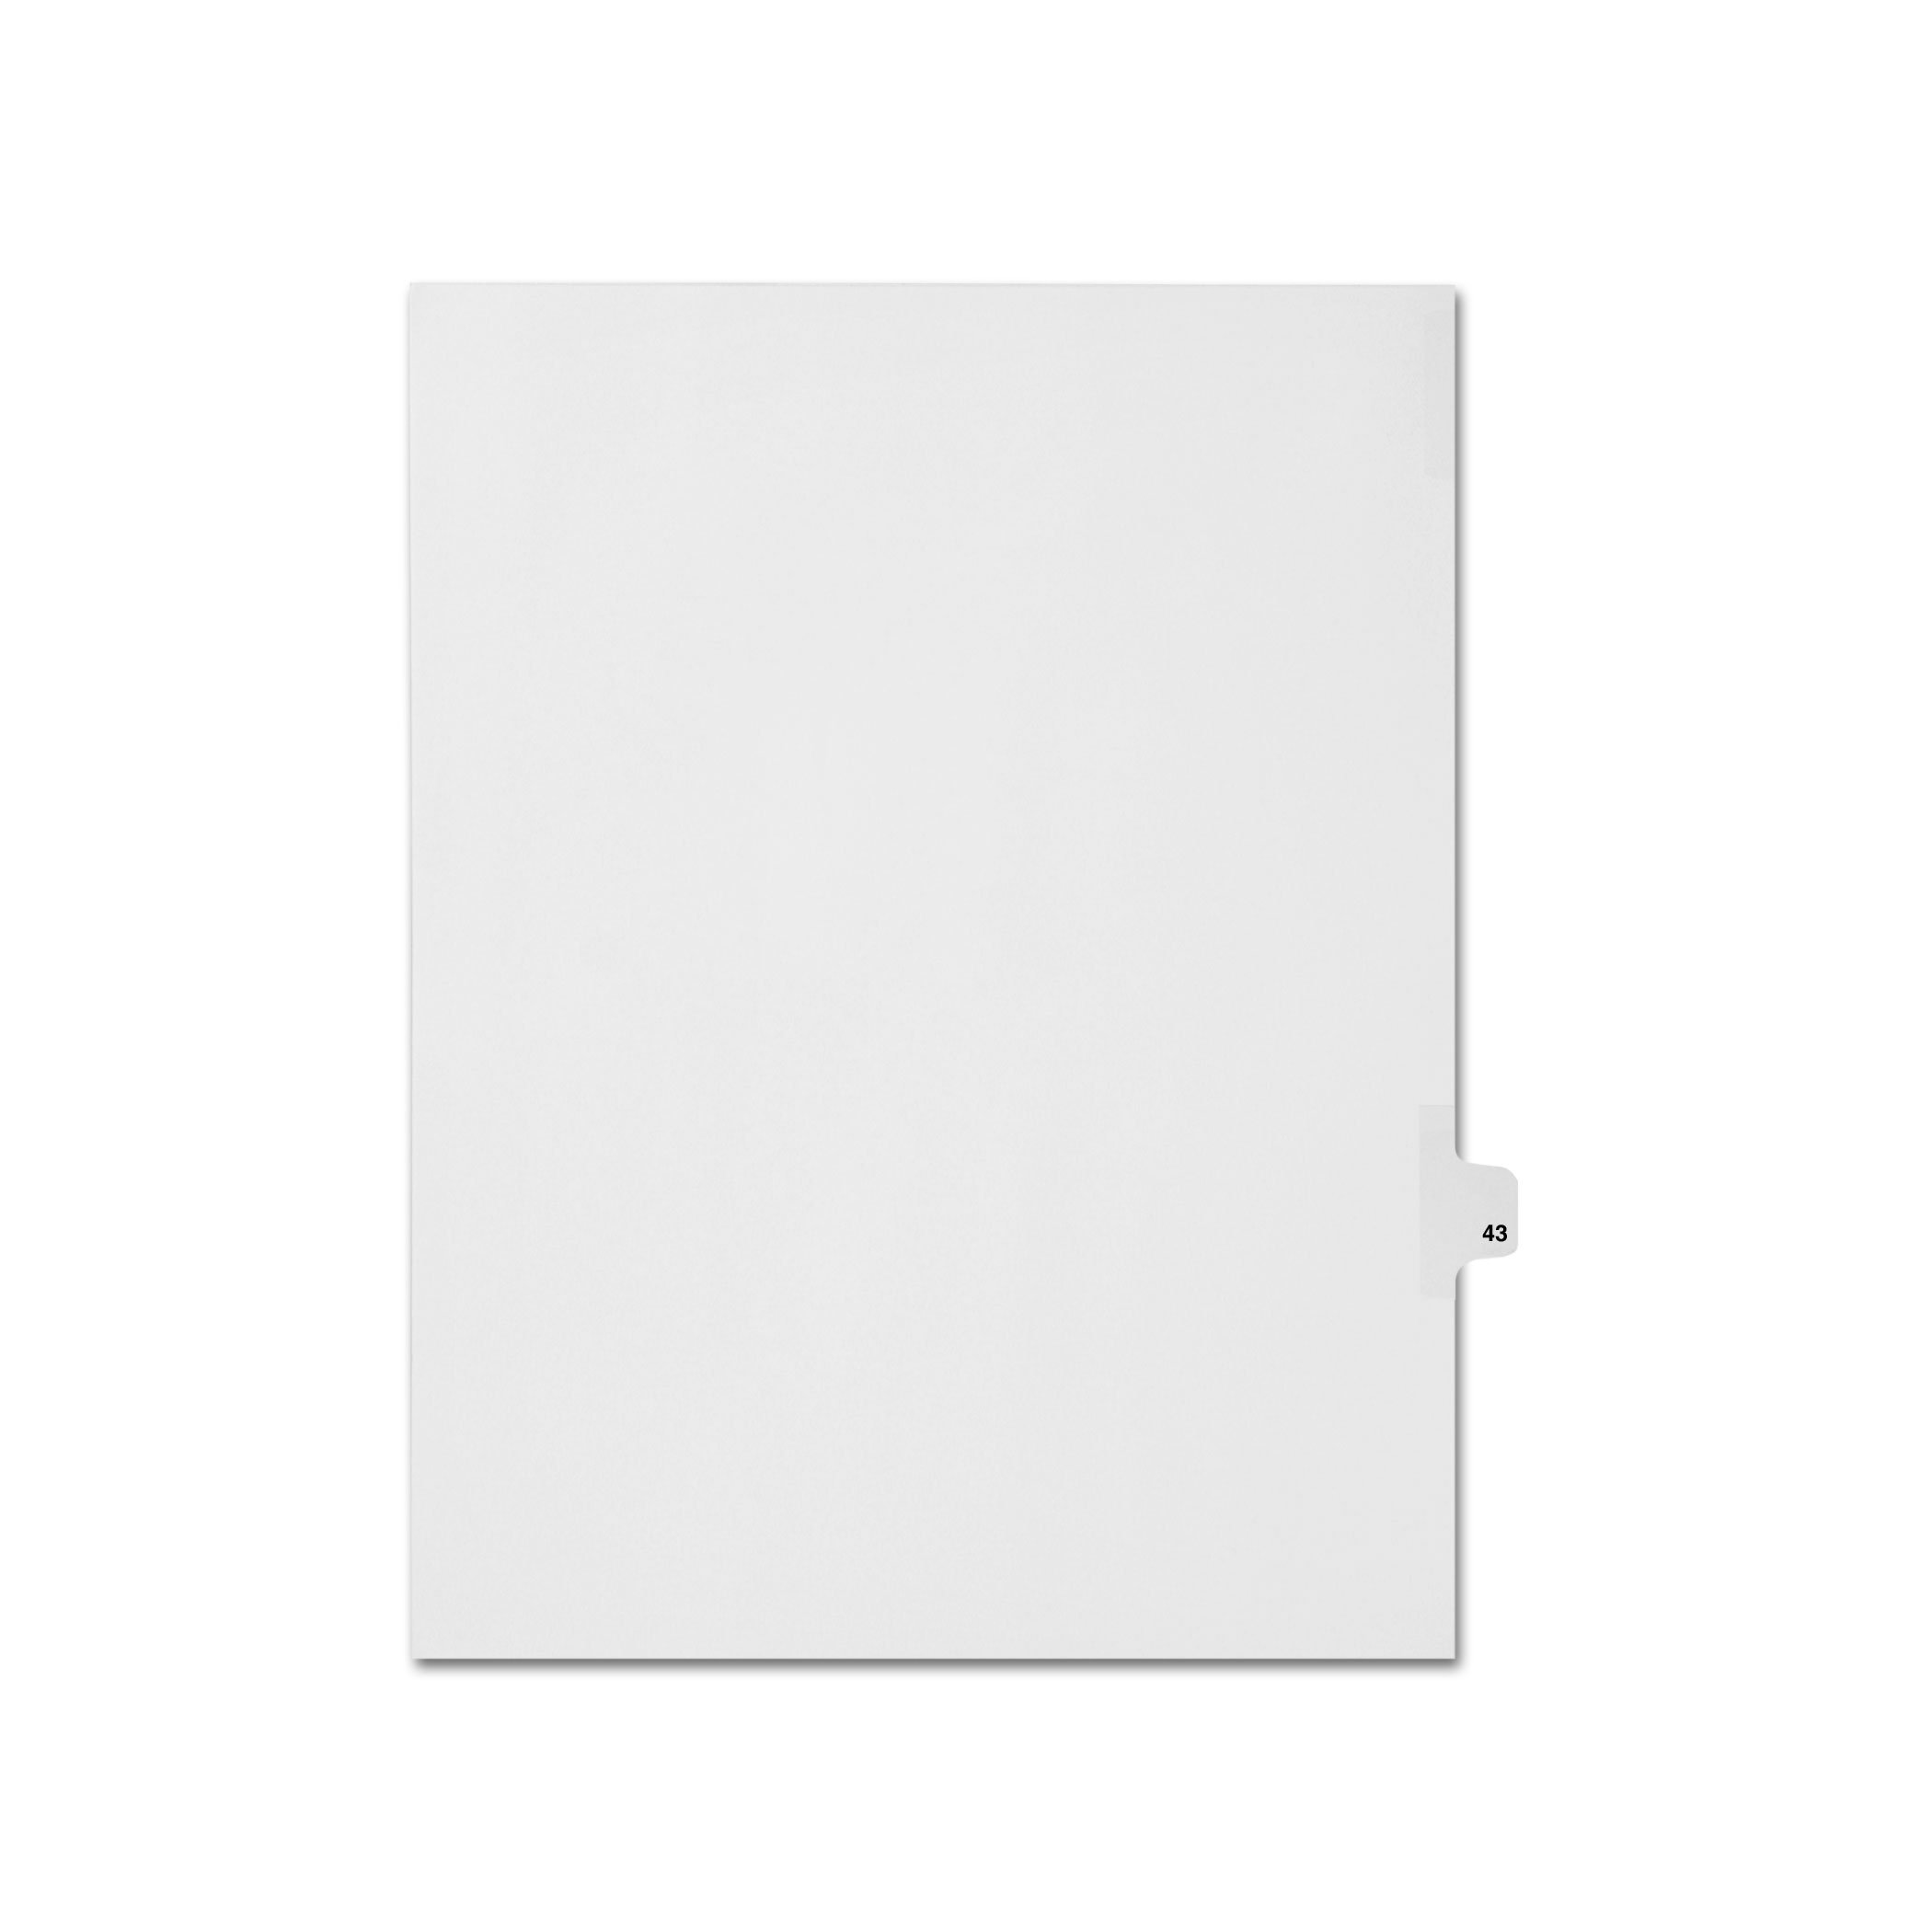 AMZfiling Individual Legal Index Tab Dividers, Compatible with Avery- Number 43, Letter Size, White, Side Tabs, Position 18 (25 Sheets/pkg)